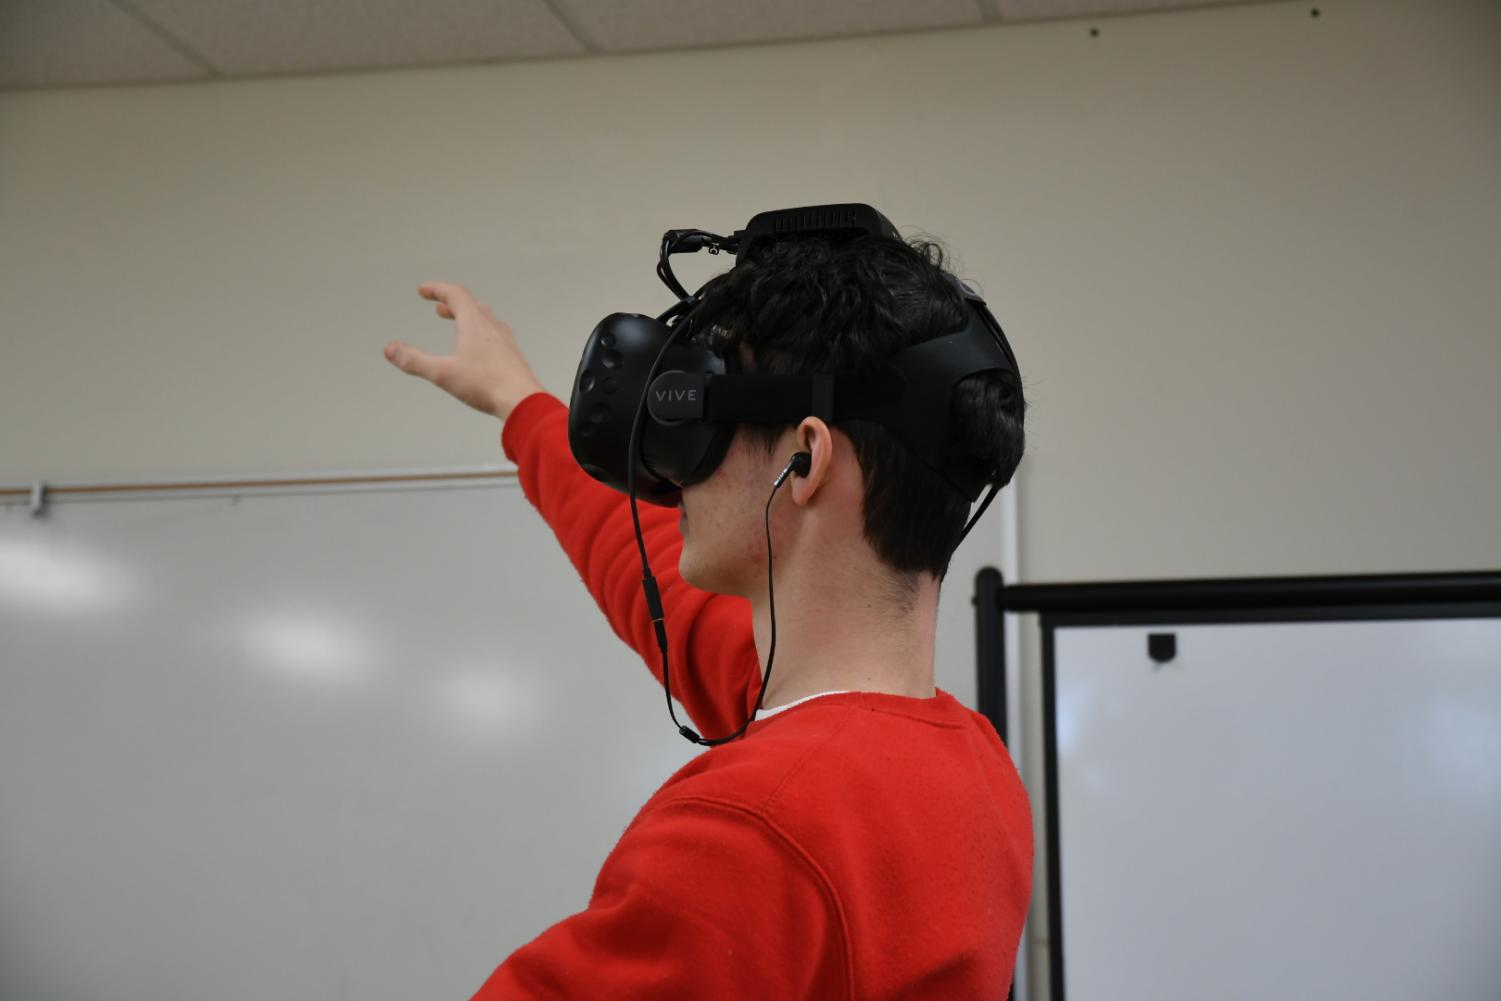 Virtual+reality+equipment+has+been+added+to+the+Innovation+and+Design+Center